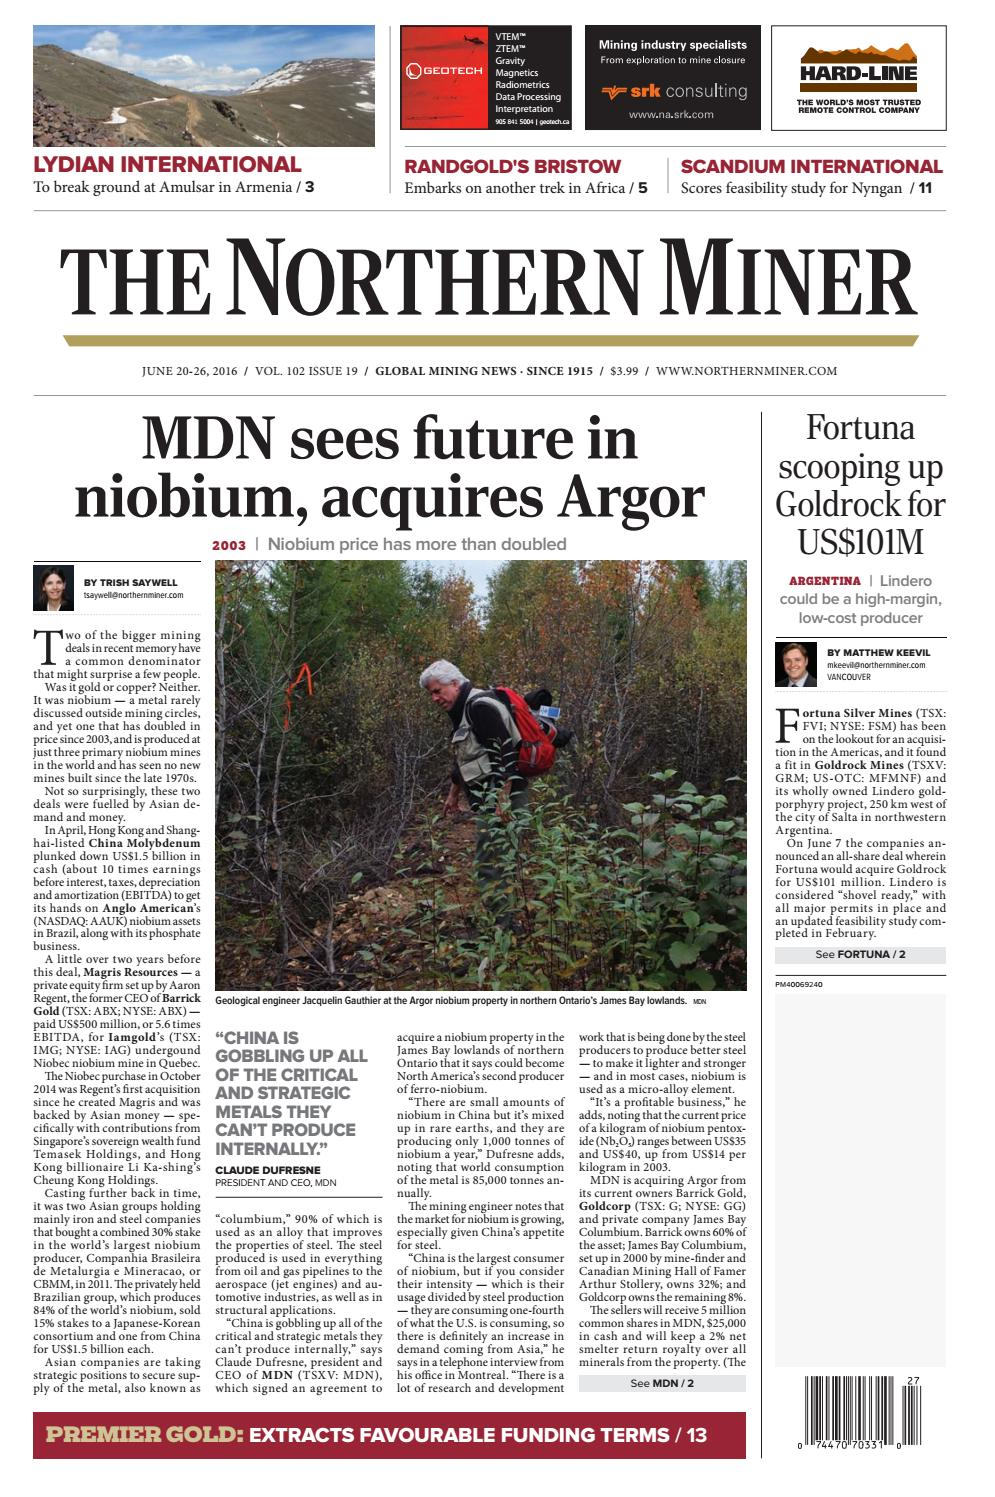 187 Niocorp Drilling Update >> The Northern Miner June 20 2016 Issue 19 By The Northern Miner Group